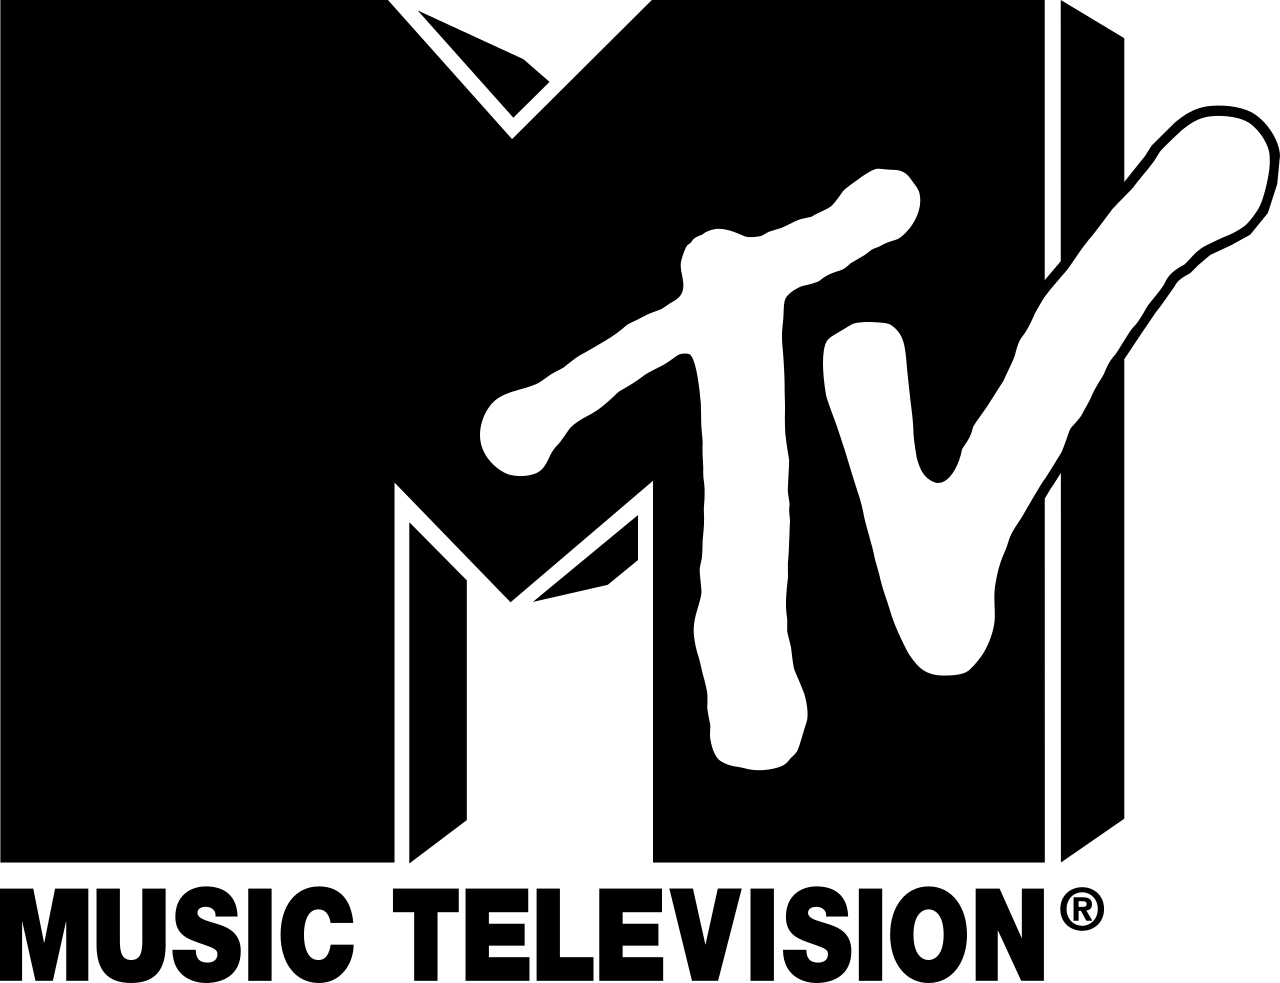 Mtv logo png. File svg wikimedia commons